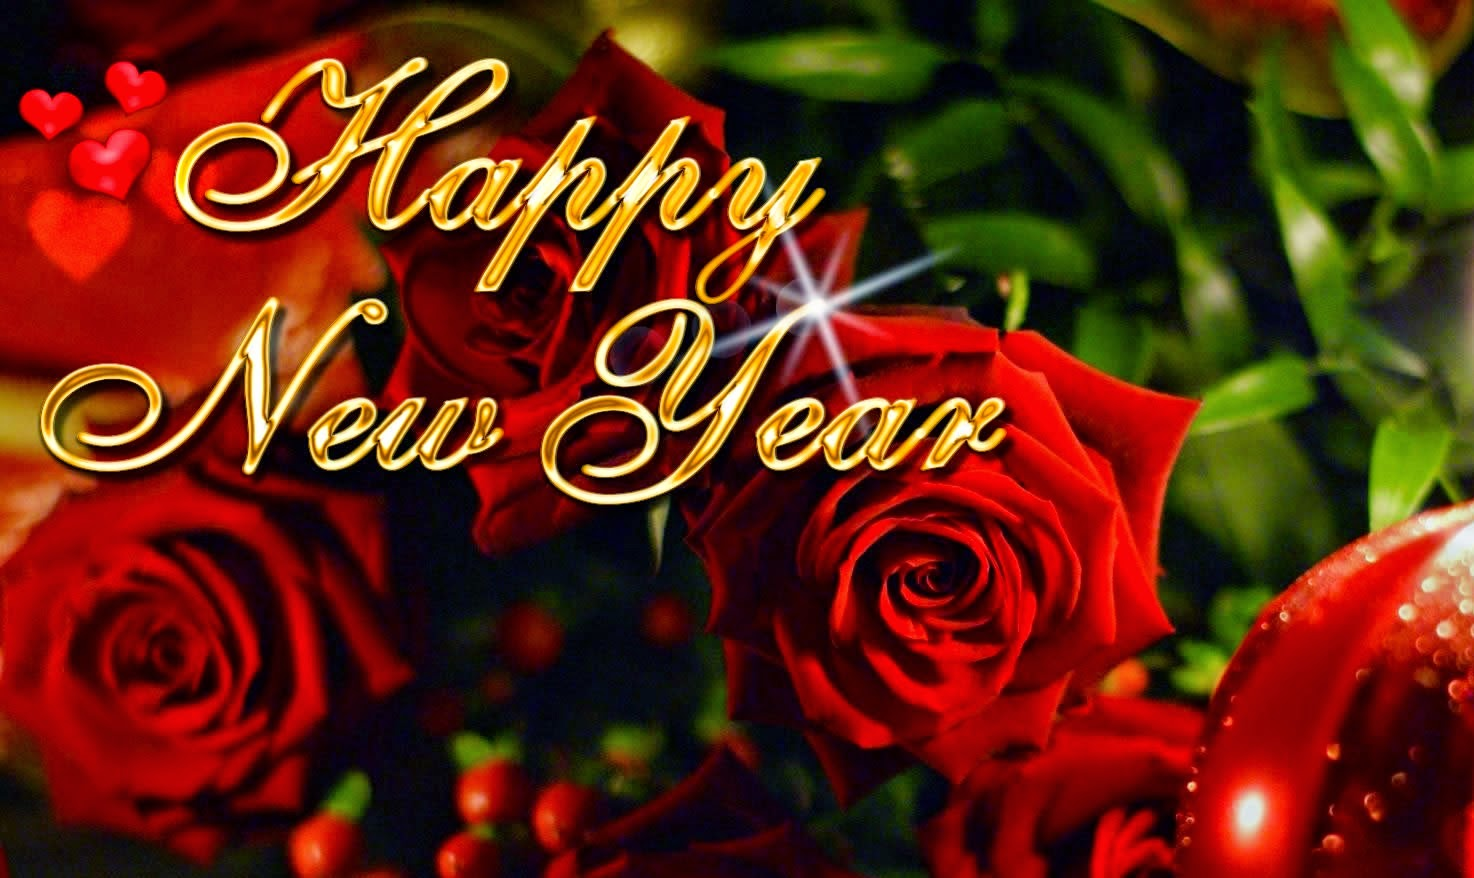 happy new year to all scr readers god bless and be safe